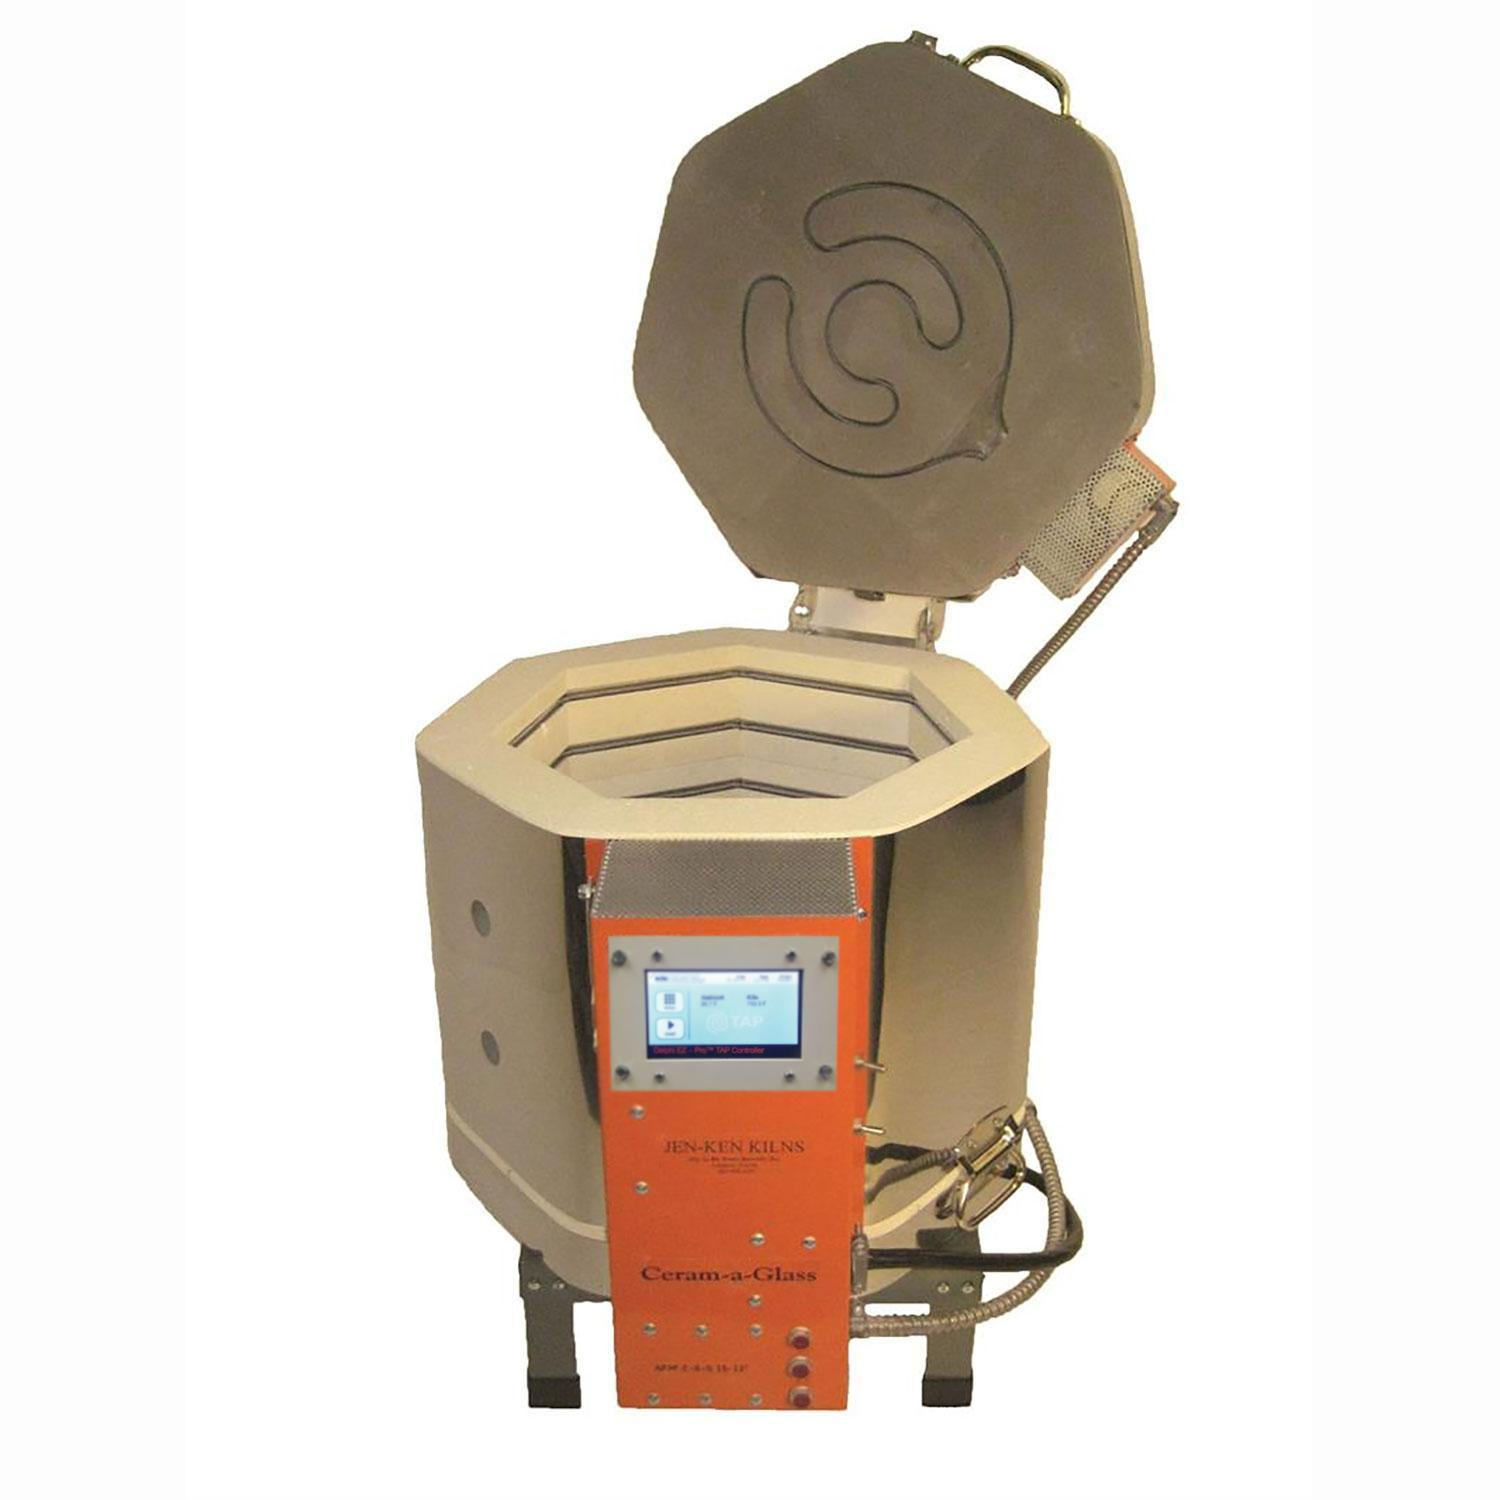 Jen-Ken Ceram-a-Glass 1513 Kiln With TAP Controller and 3 Brick